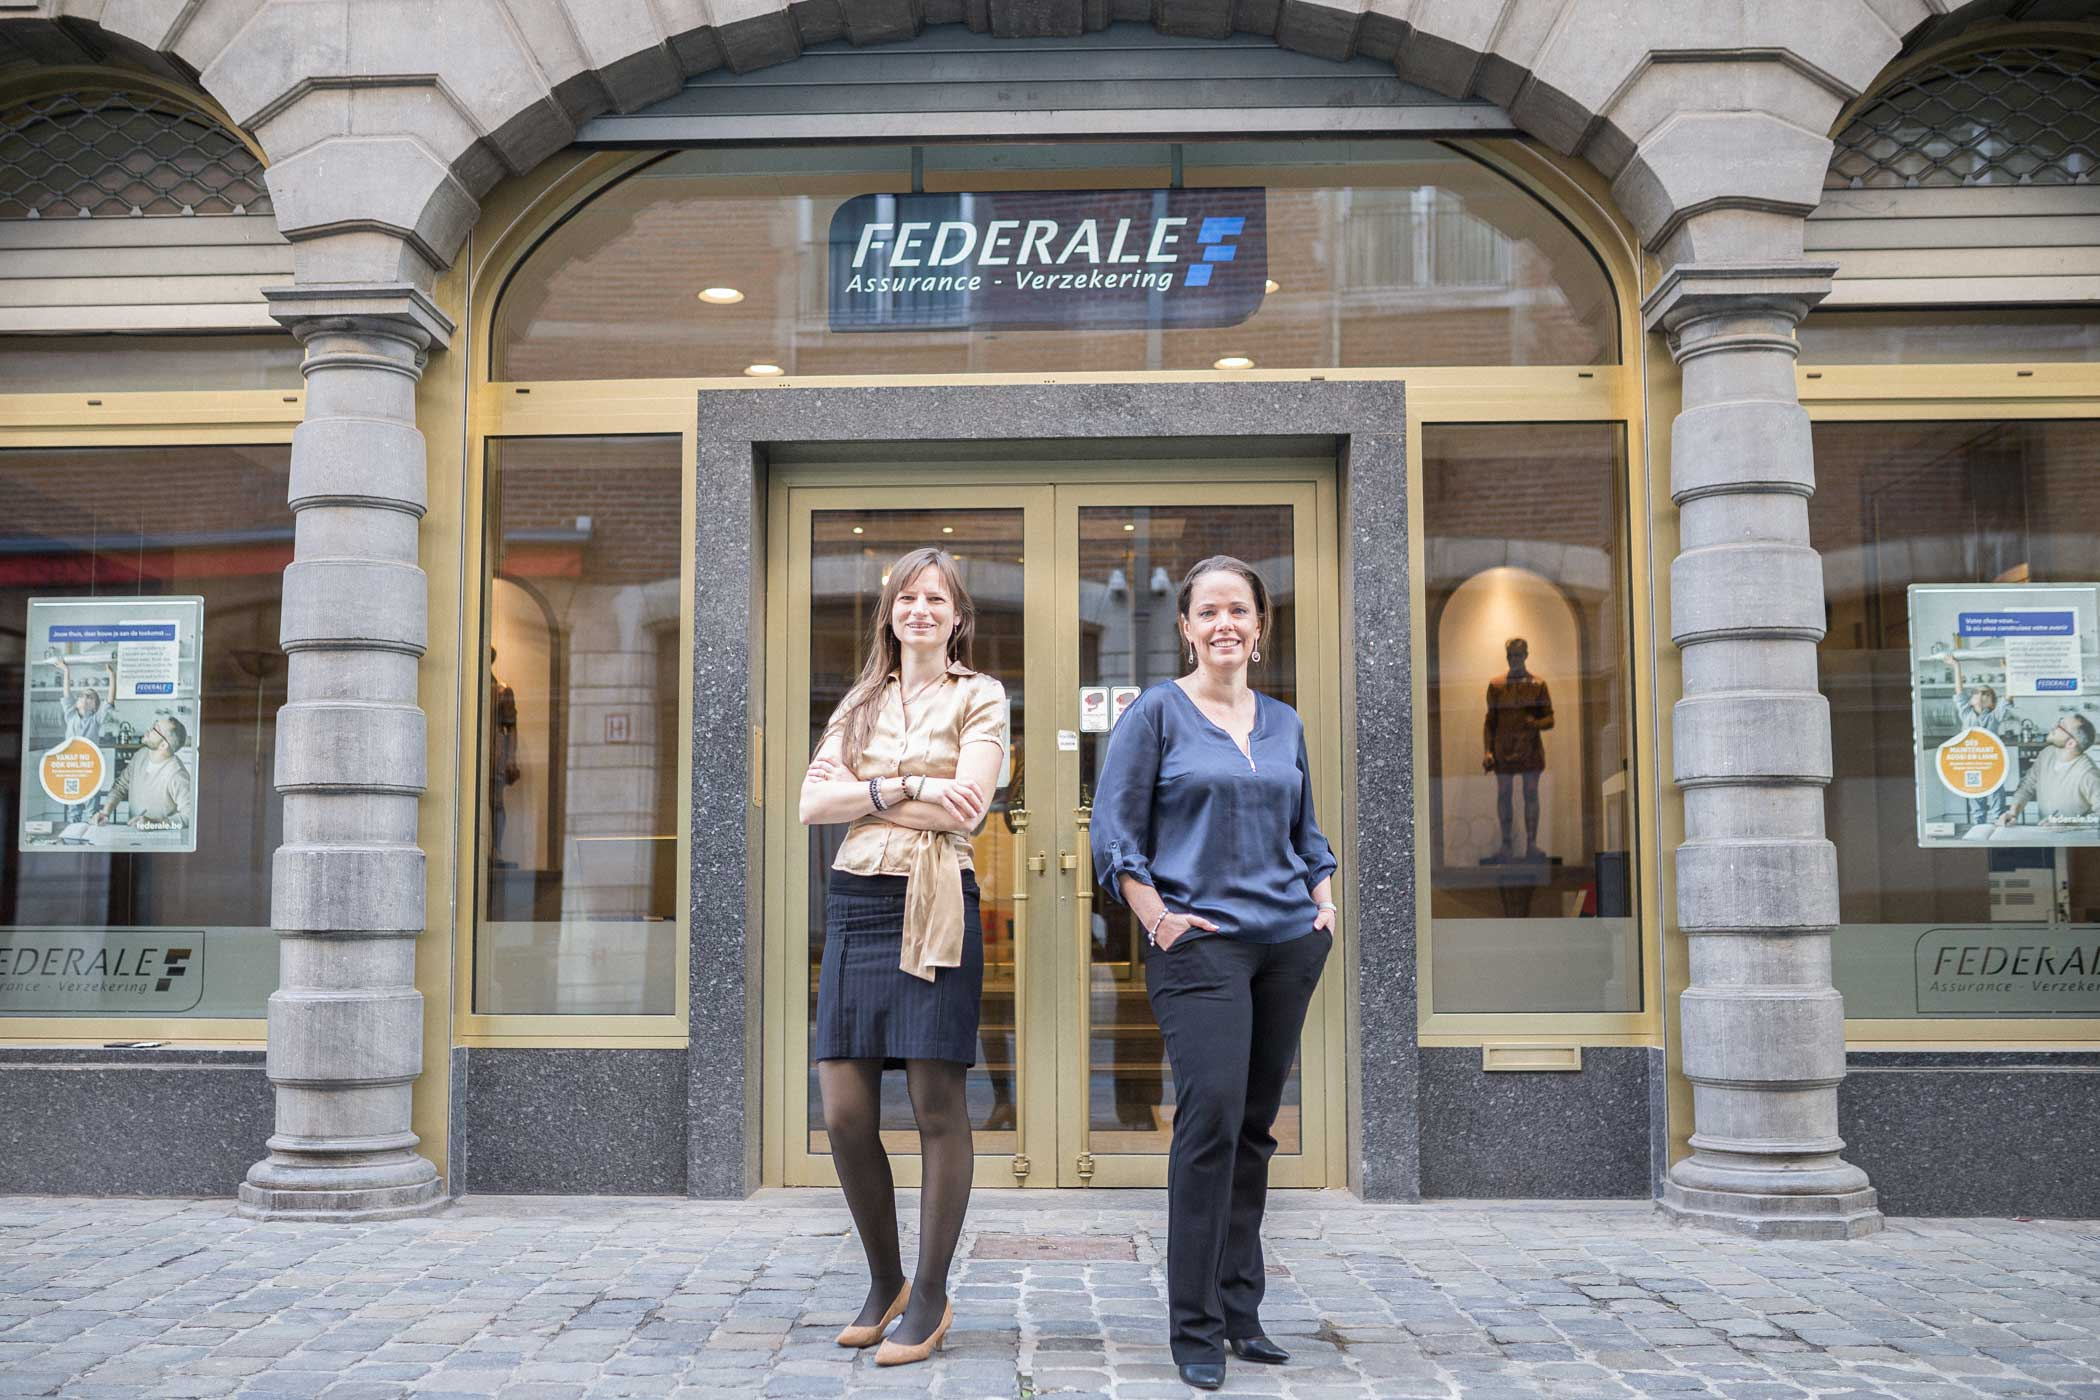 Amandine Rouvroy, Head of Business Intelligence Competence Center at Federale Verzekering-Assurance and Ariane Berckmoes, Chief Technology Officer at Federale Verzekering-Assurance